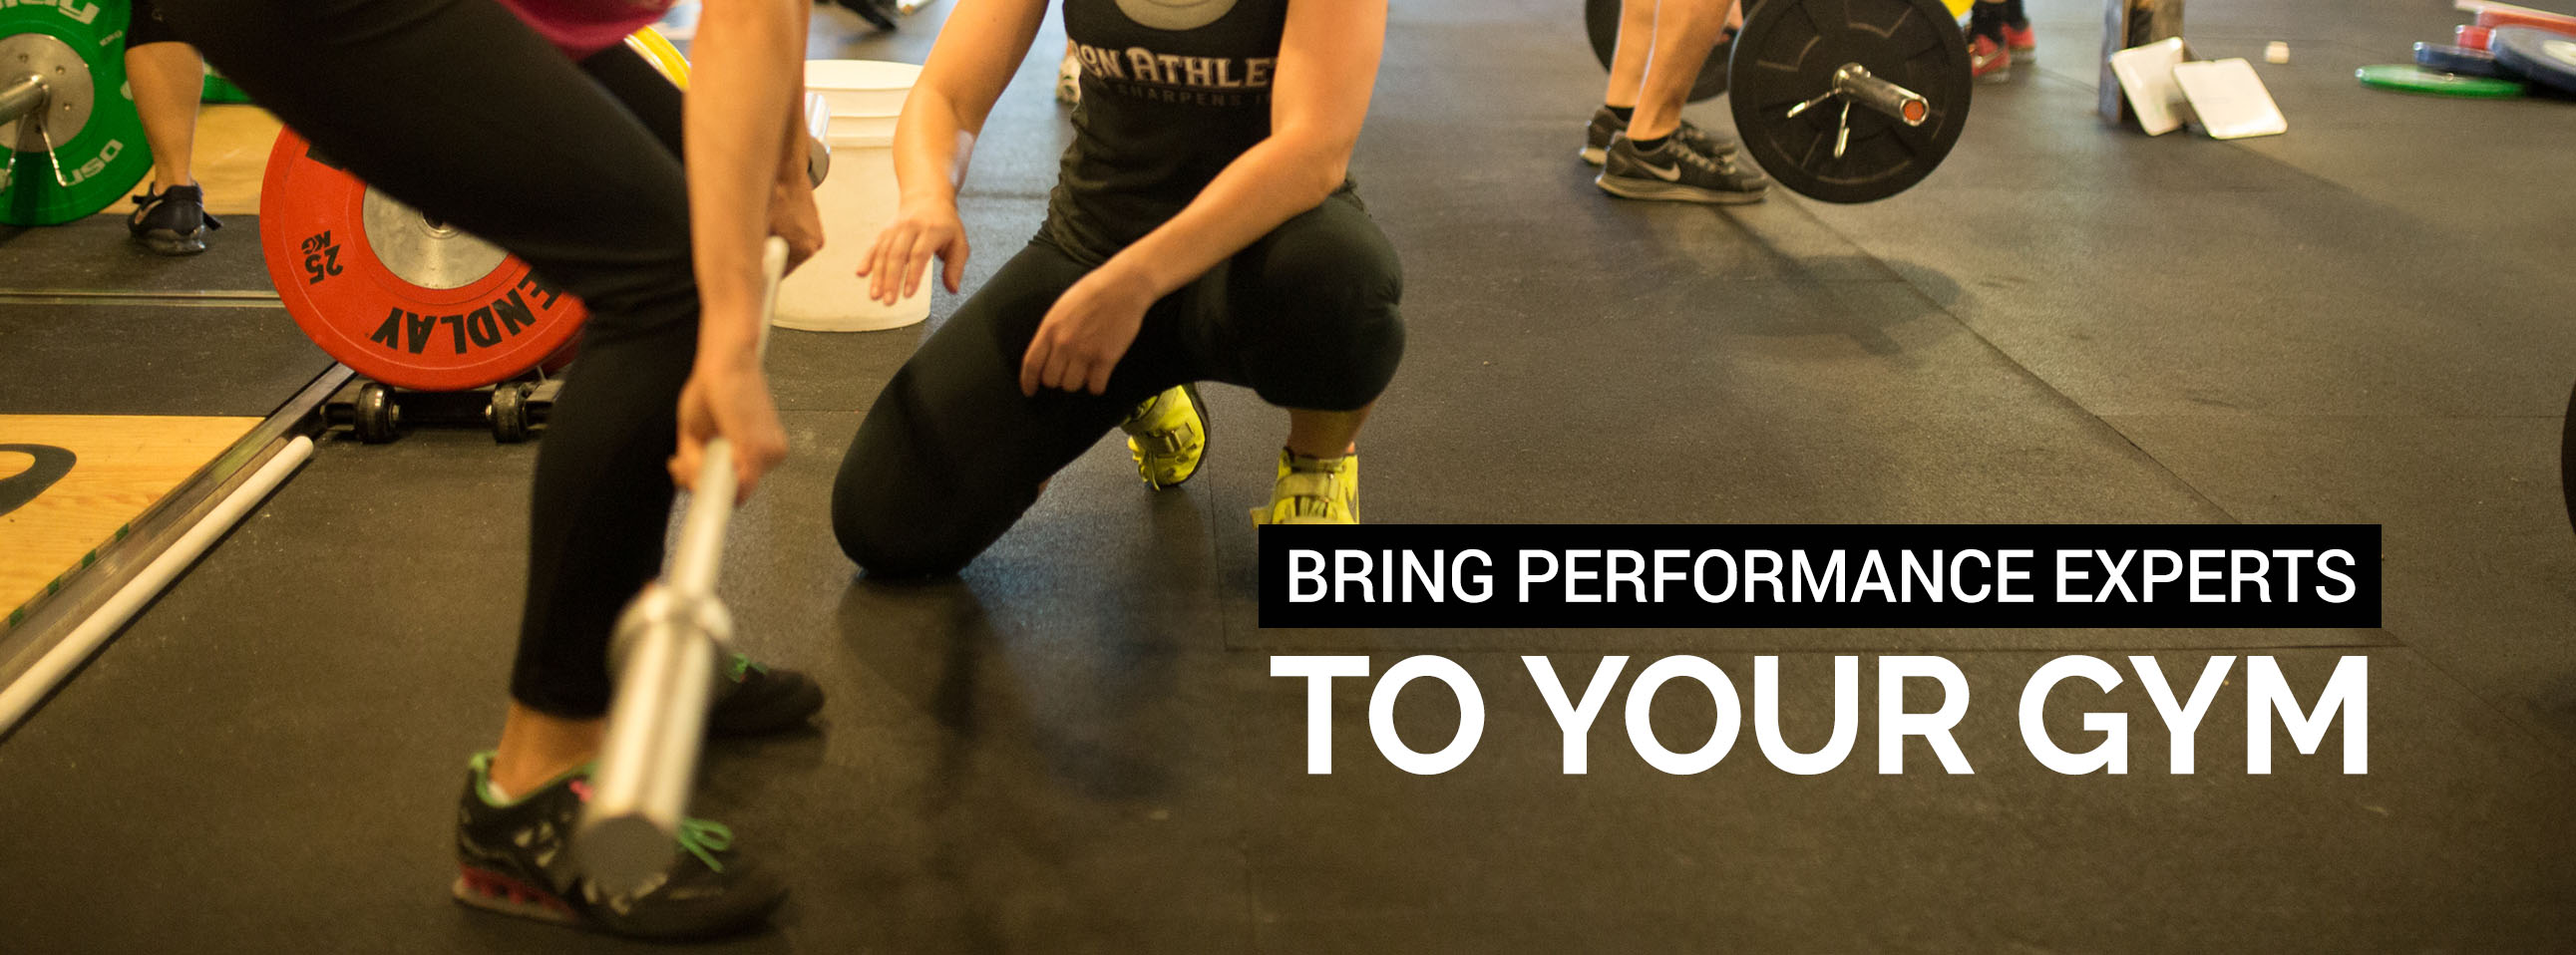 Iron Athlete Brings Performance Experts to You